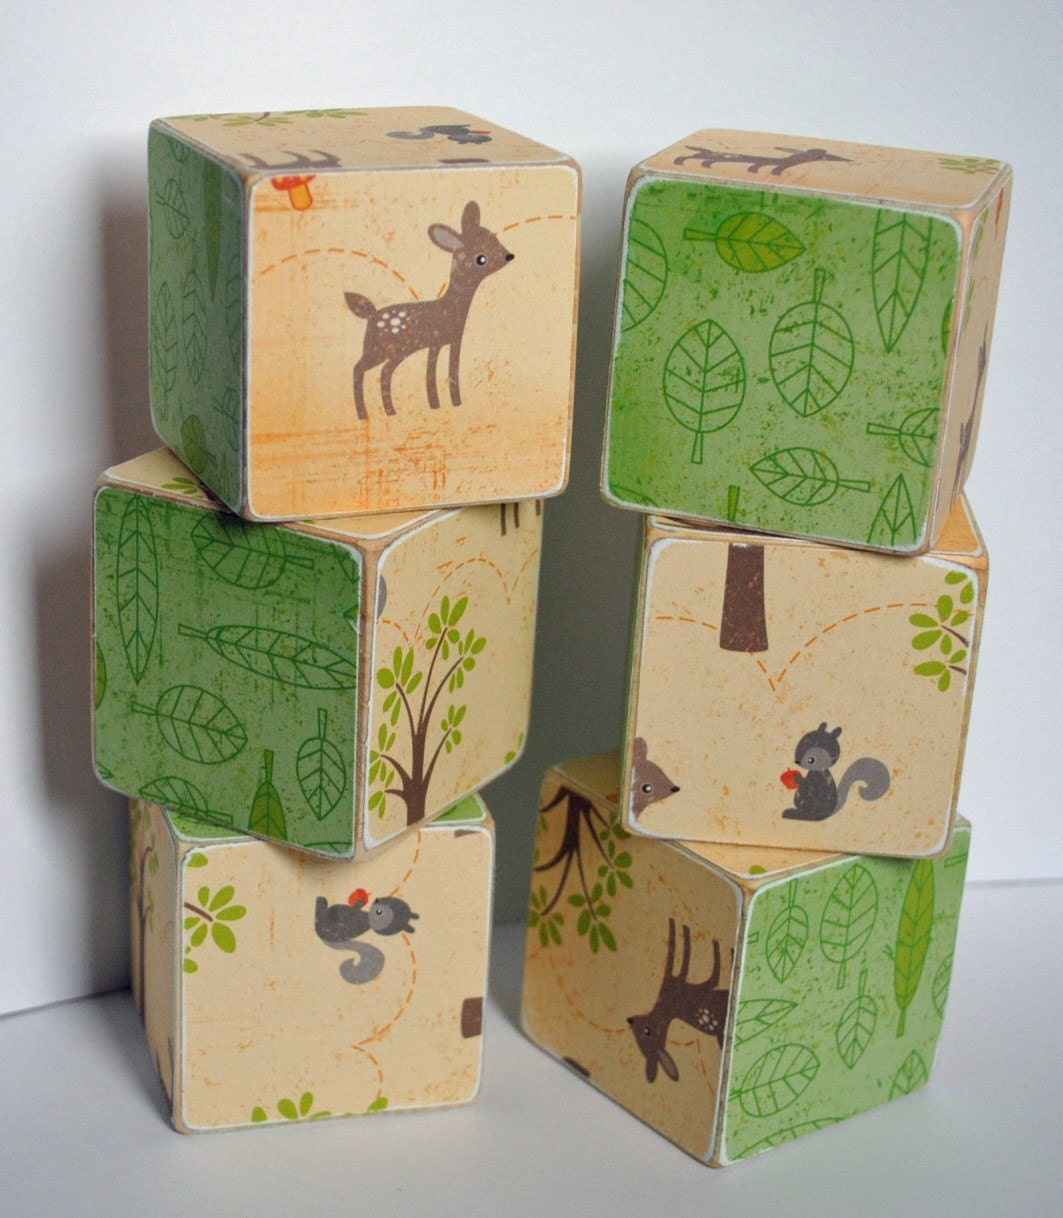 Woodland Whimsy Childrens Wooden Toy and Decor Blocks